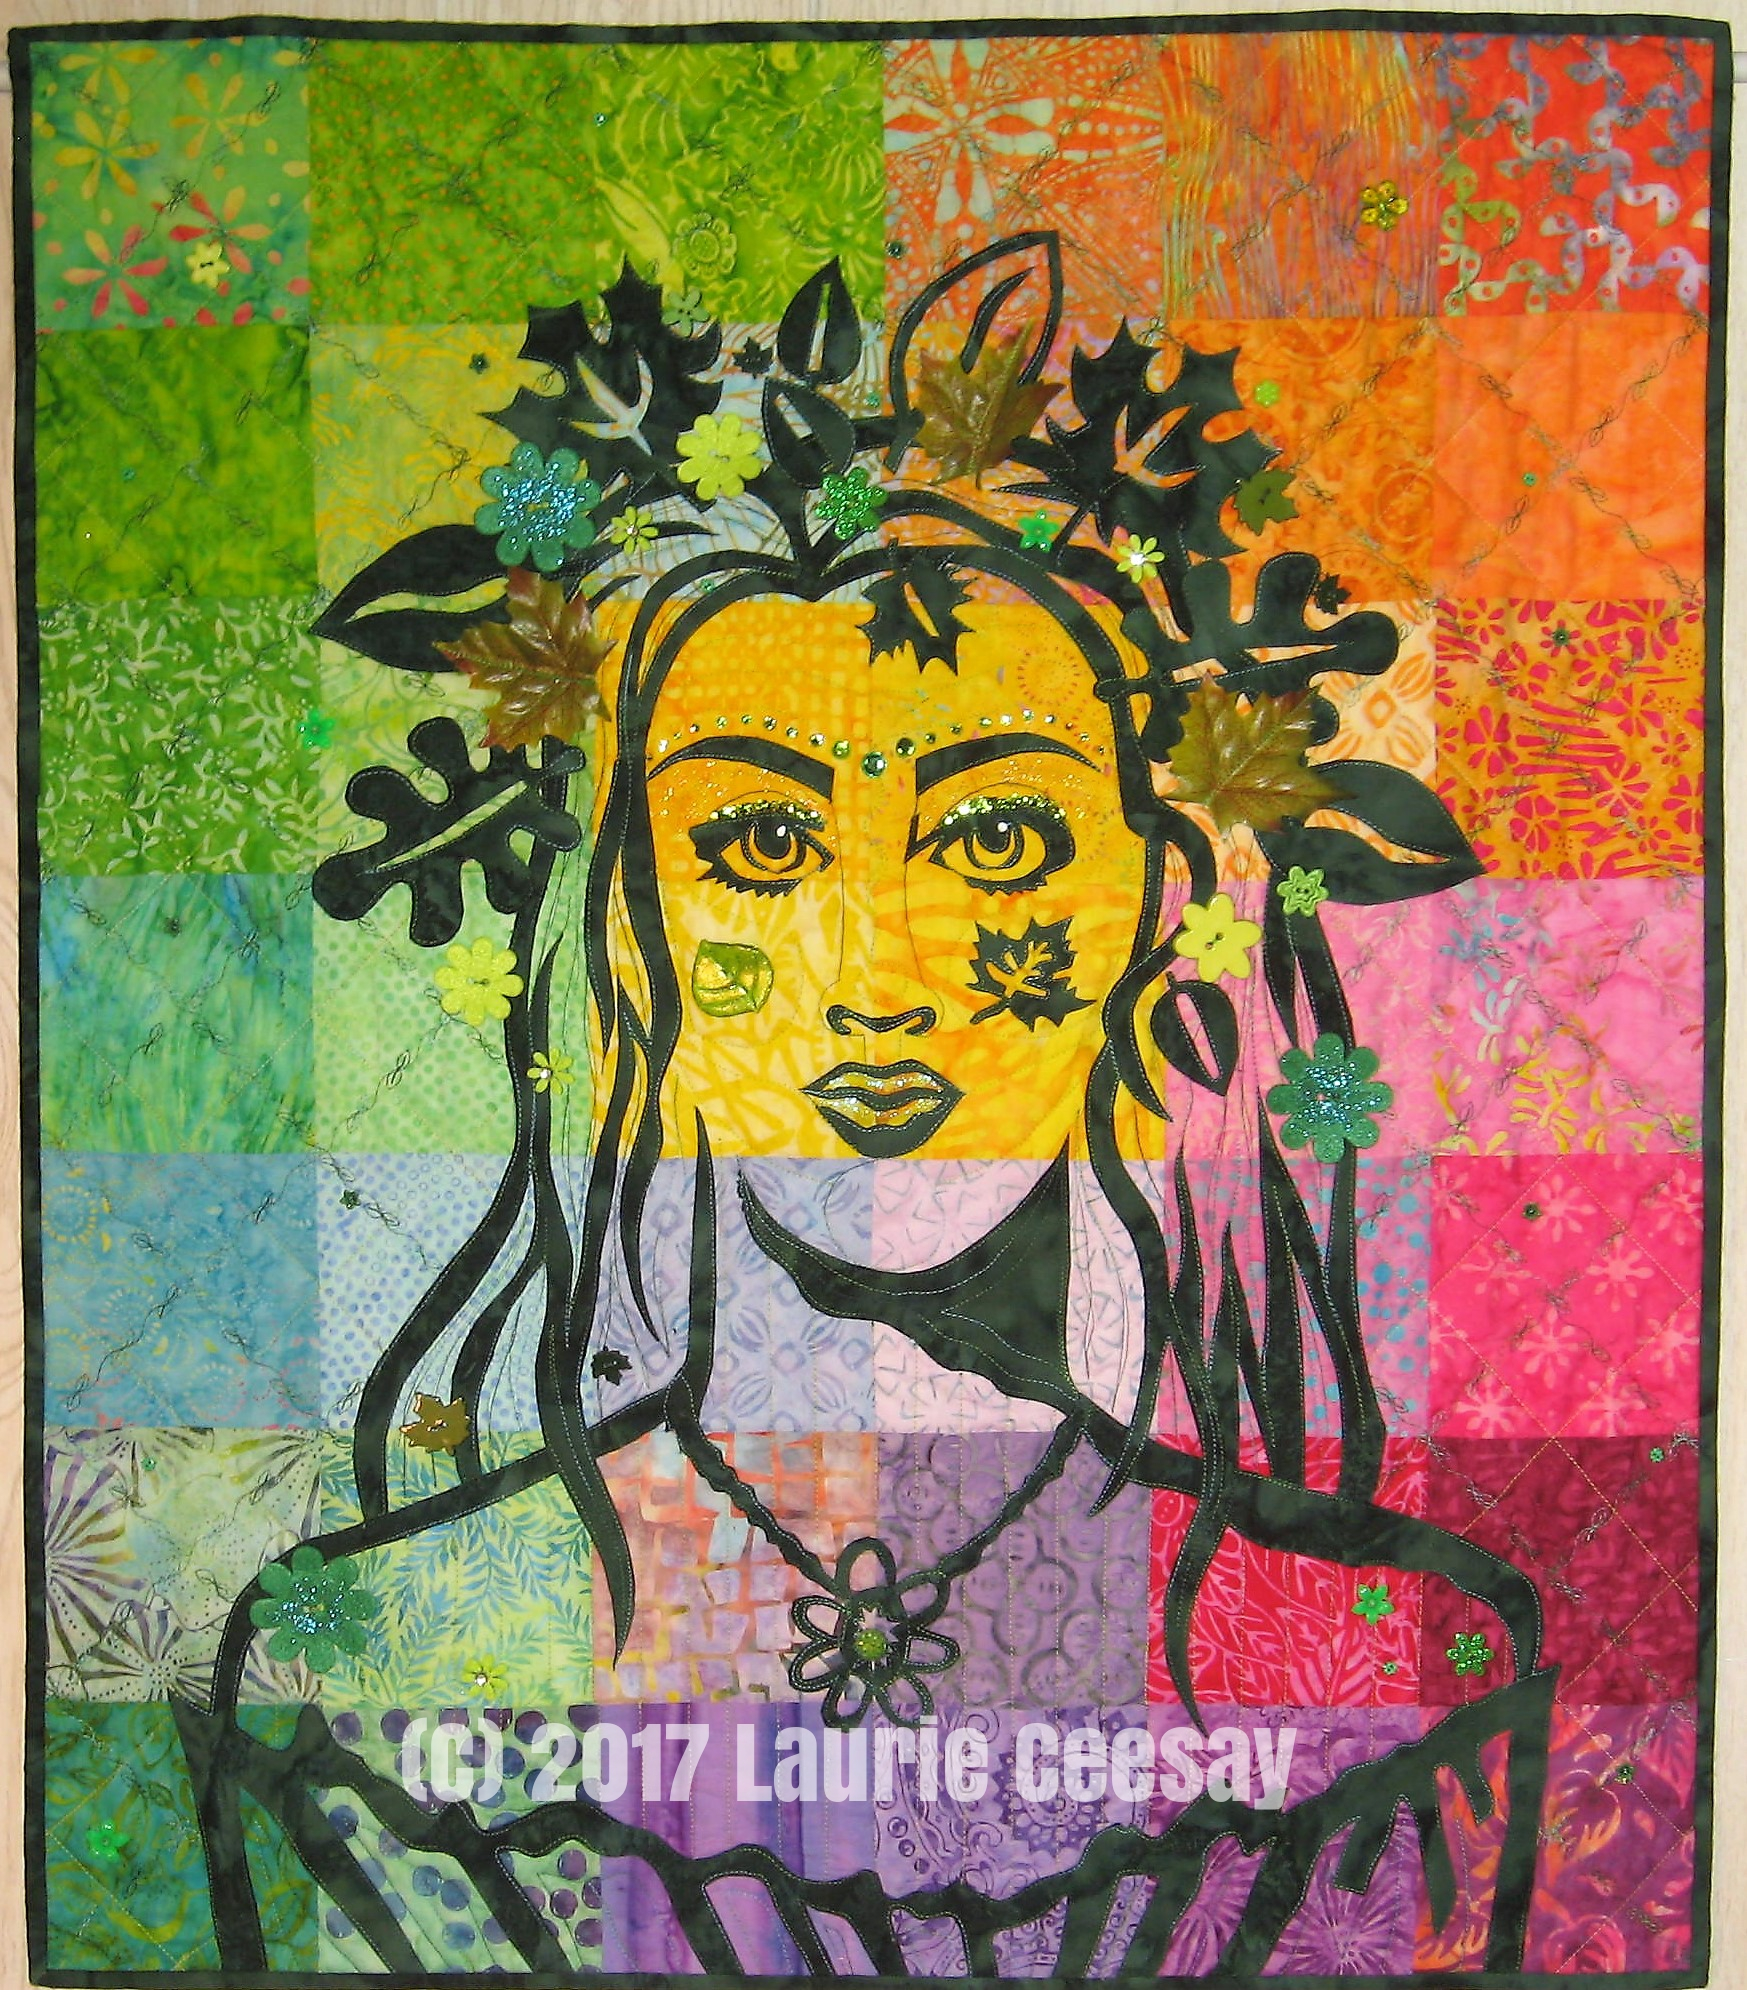 """This is my newest portrait quilt pattern called """"Earth Mother"""" which is available for sale on my website. I had made this quilt back in 2011 and brought it out of retirement this Spring to show it as examples of embellishment options while lecturing at a quilt show. A few people asked if this was a pattern and I said """"it could be!"""" I changed the background and utilized the piecing of scrappy 5"""" squares to help guide in the applique placement since the vertical and horizontal seam lines work as guidelines.  I selected 42 5"""" squares of batiks for the background and a dark green batik for the raw edged fused applique because green seemed nature-like and Summery. The finished size is 28"""" x 32."""" Earth Mother has long hair, an off the shoulder dress, a pendant necklace and a variety of leaves to form a crown in her hair plus one more on her cheek."""